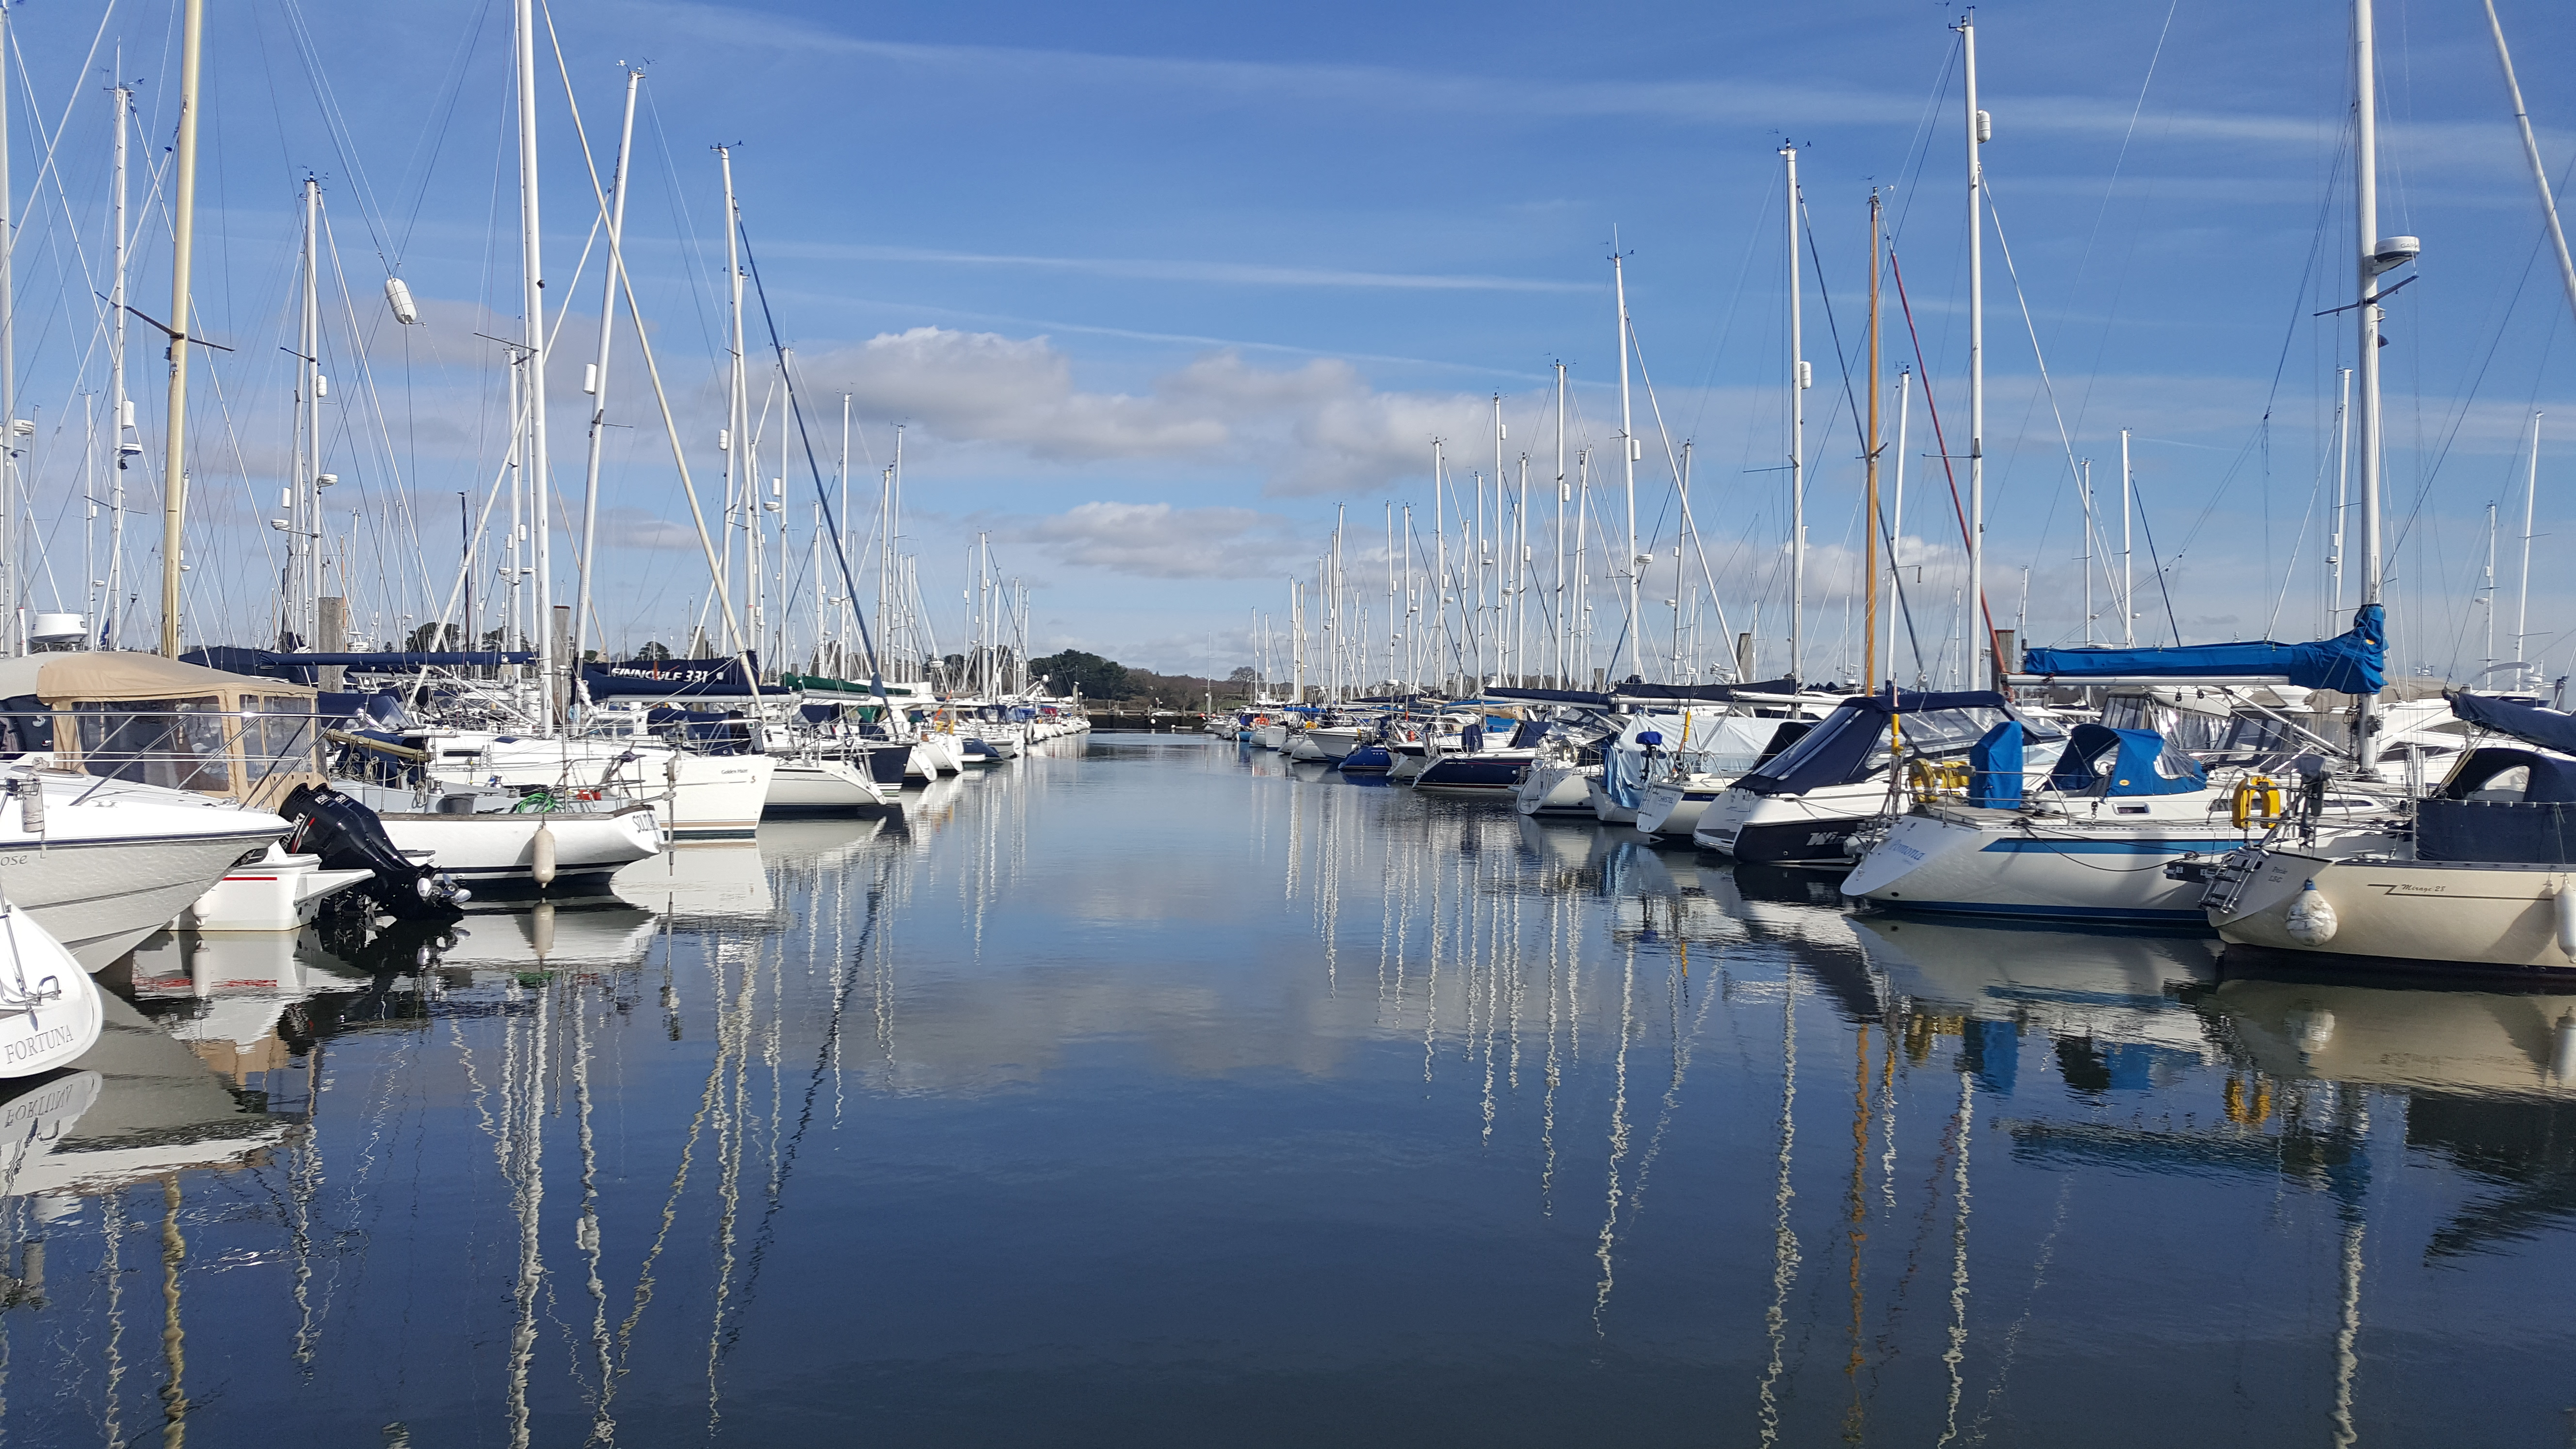 A marina with flat water and boats on a sunny day